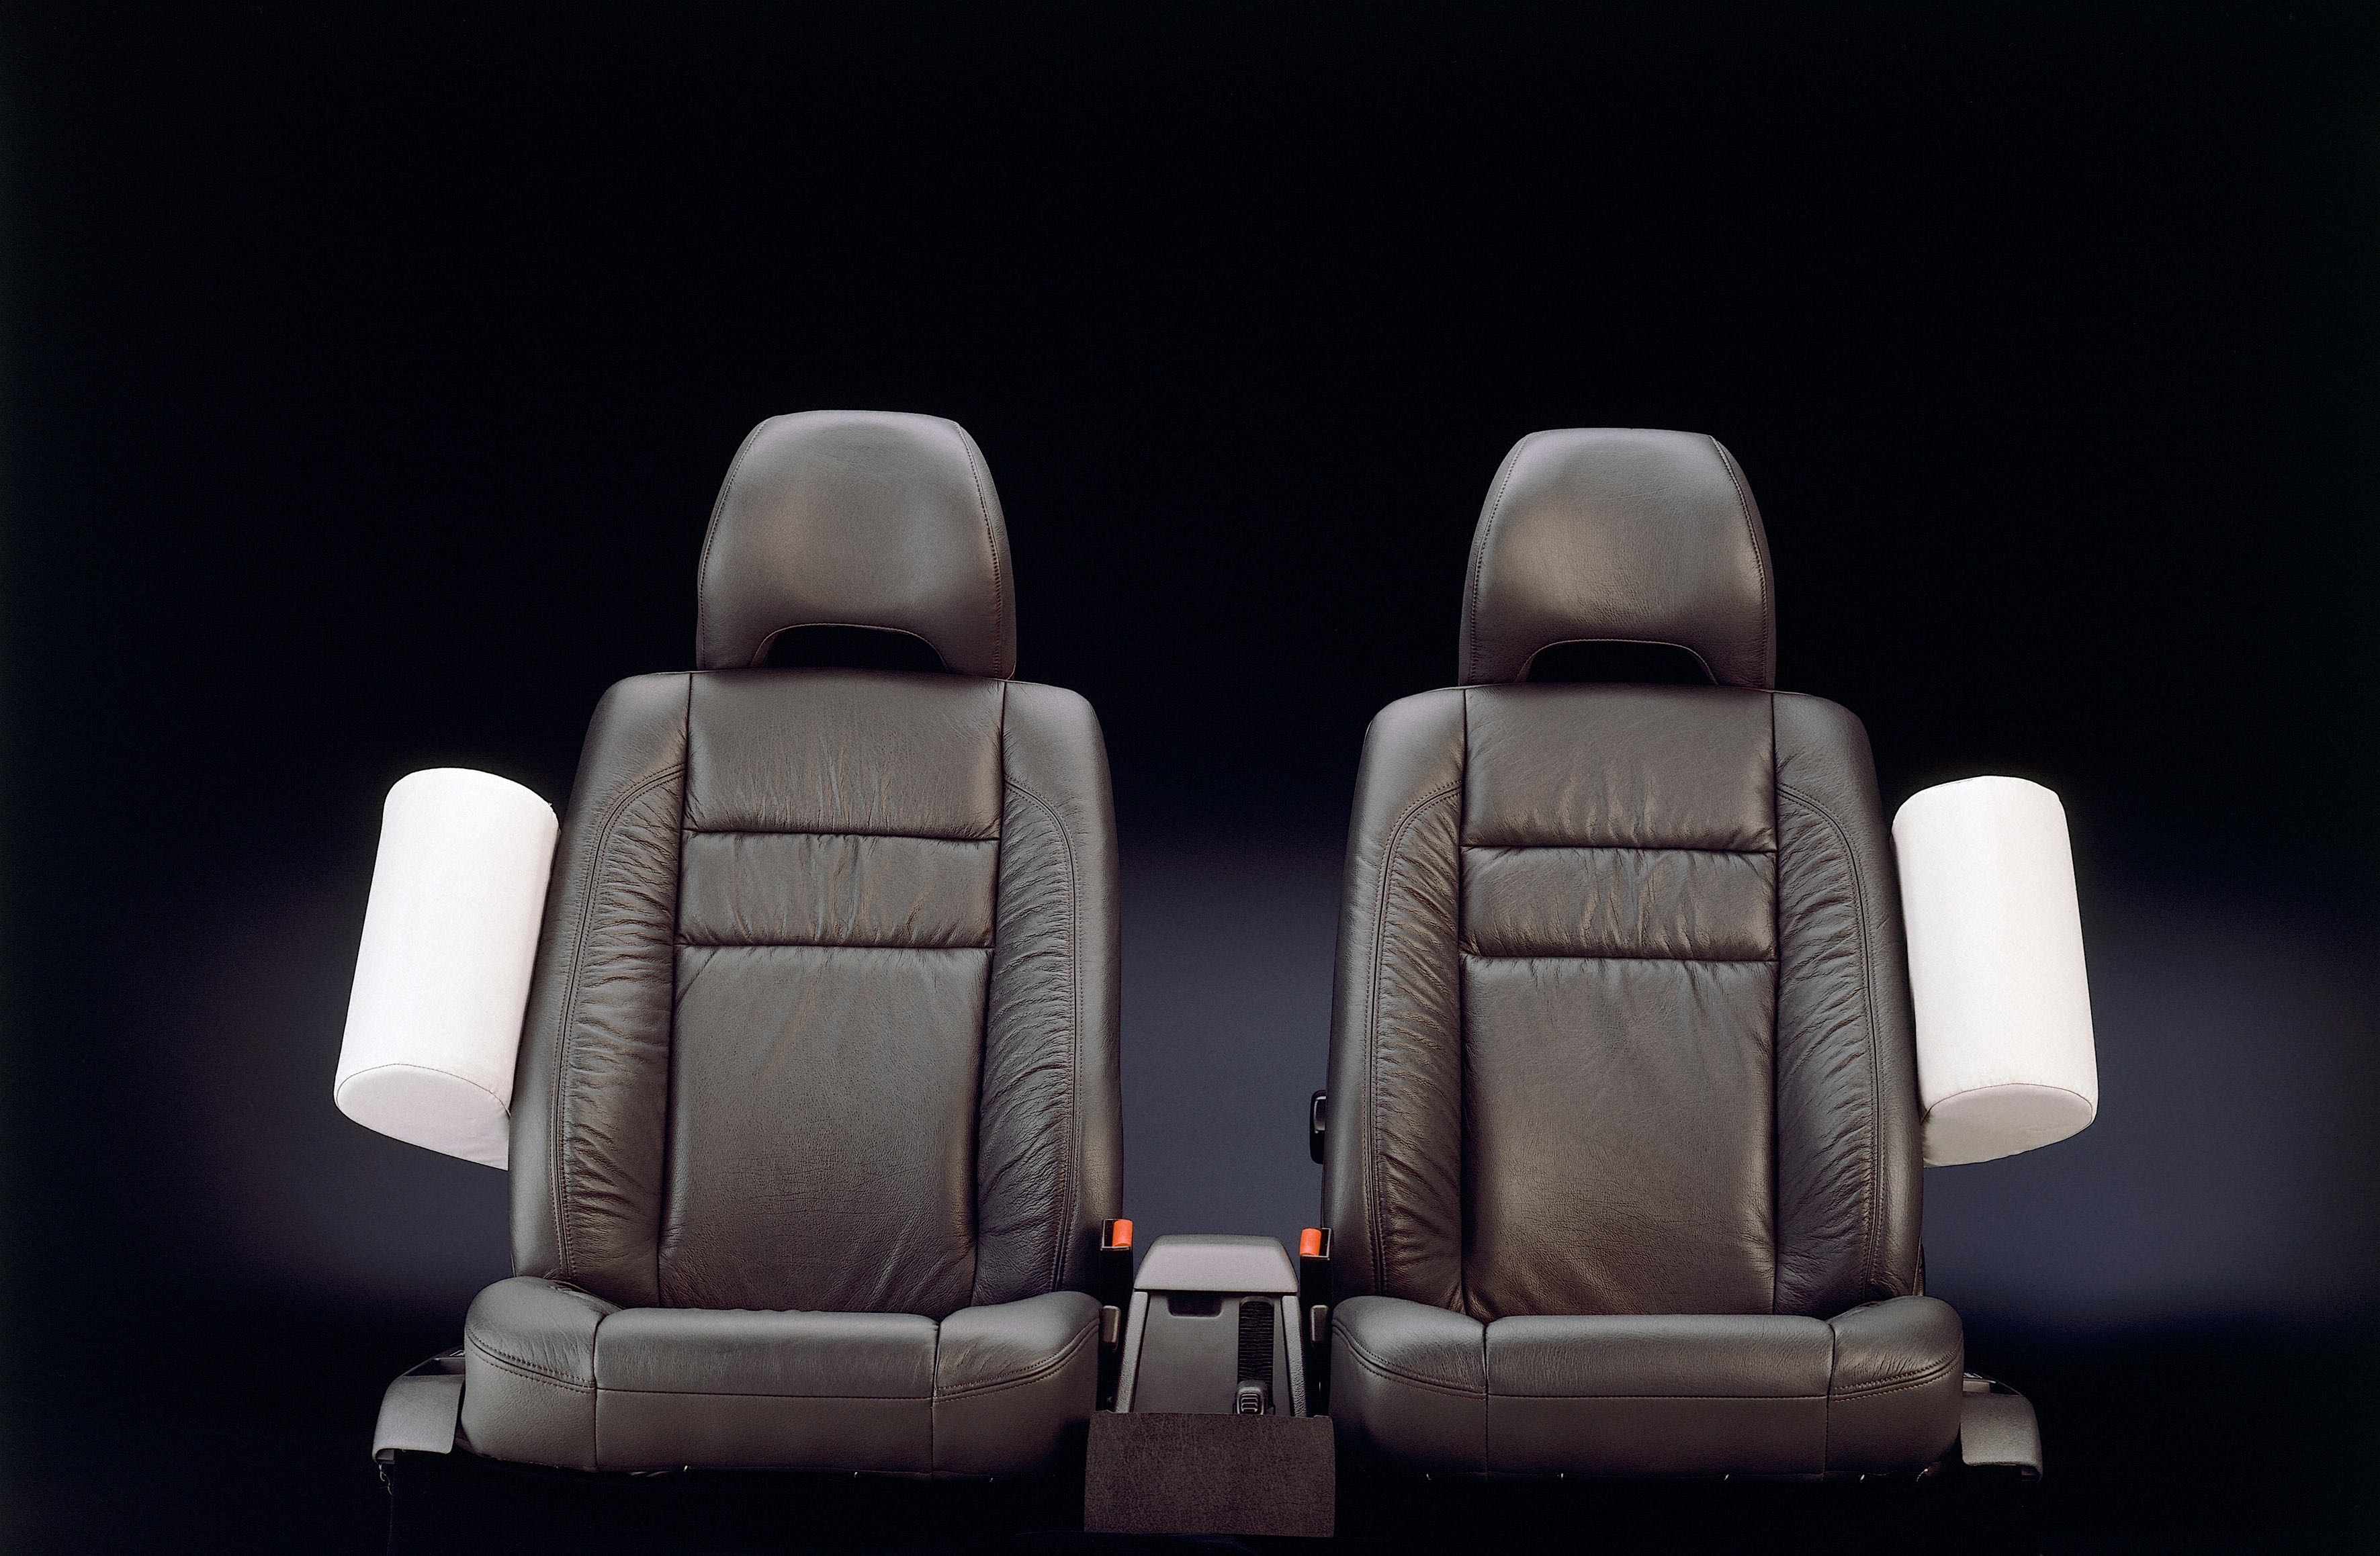 Volvo 850 Interior Seats With Side Impact Protection System Sips -  850, 1996, Detail, Historical, Images, Other, Safety, SIPS